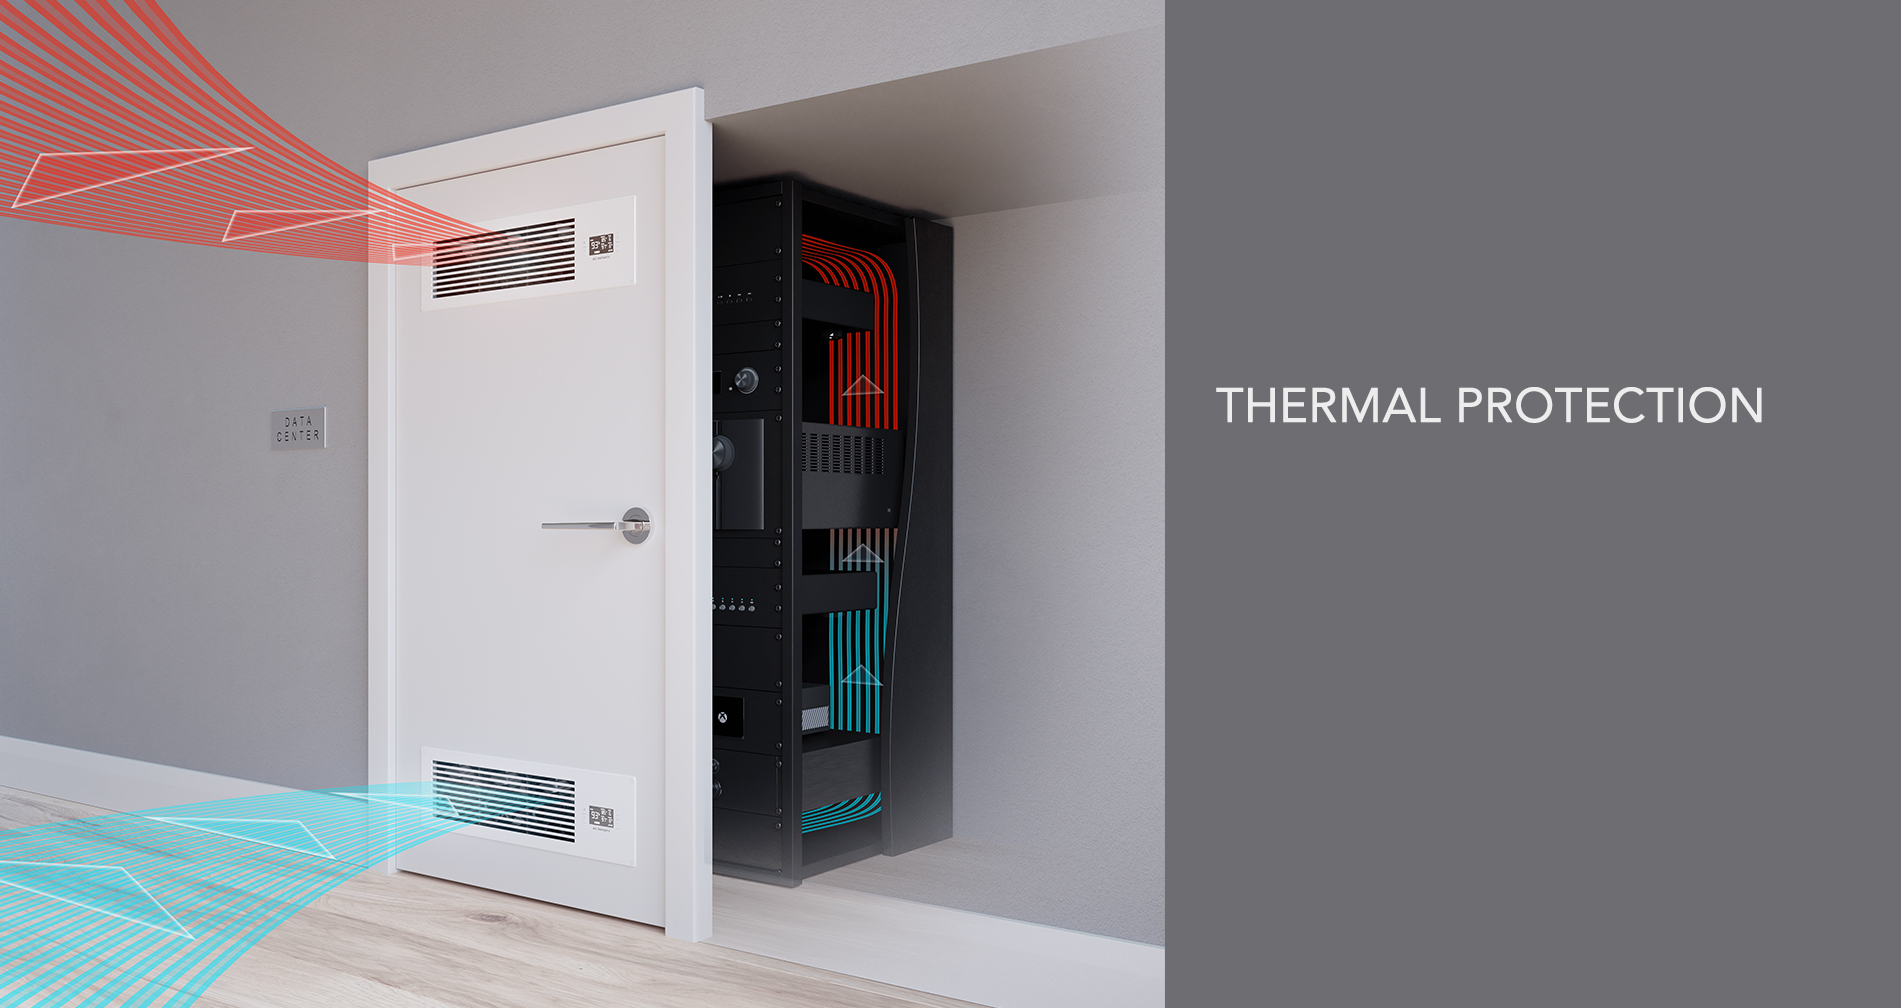 The AIRFRAME Closet Fan System Is Designed To Quietly Cool AV Components  And Equipment Stored In Closets, Rooms, And Large Enclosures.